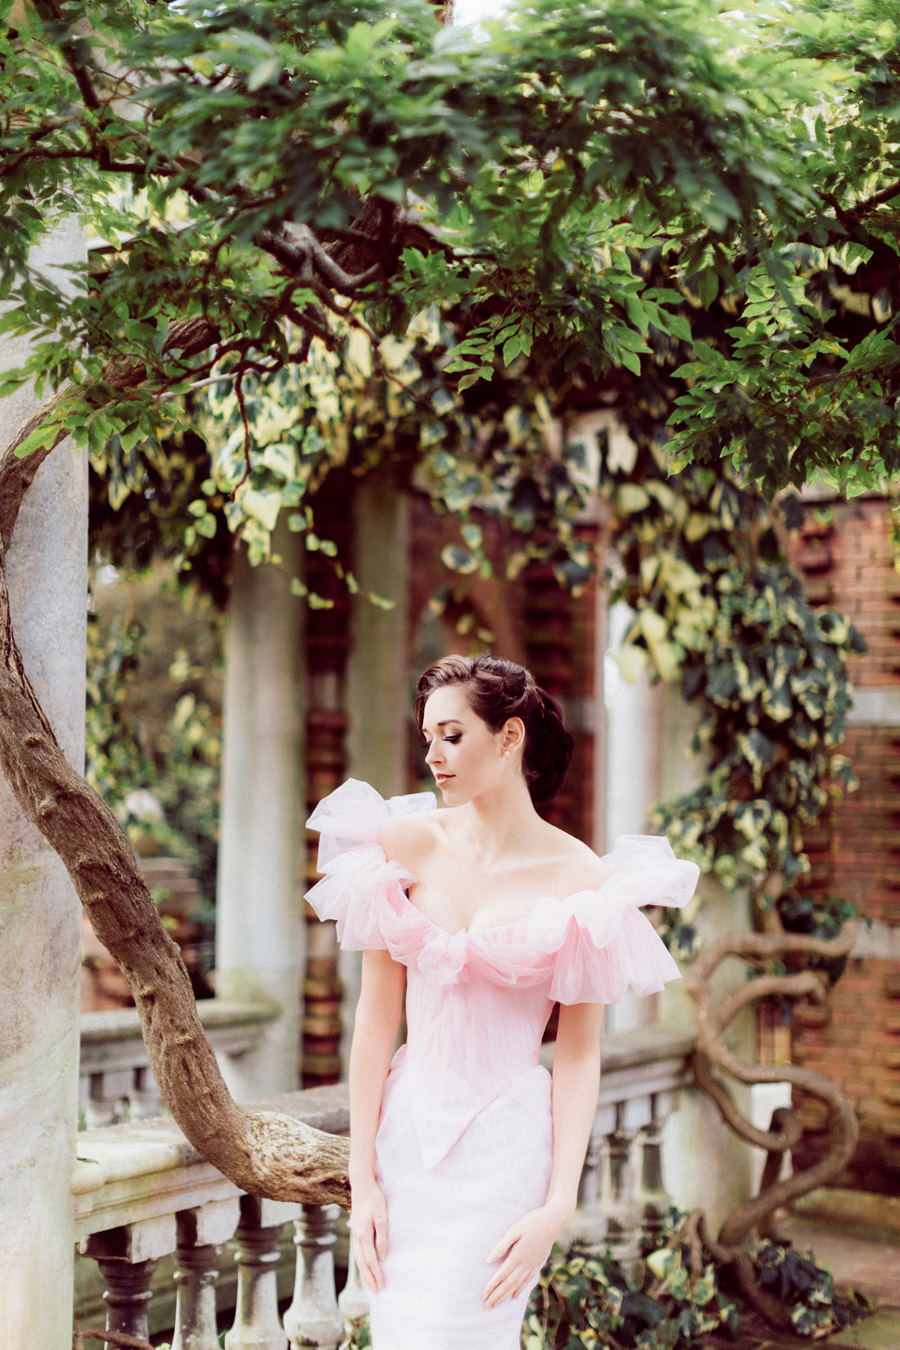 My Fair Lady! A Sophisticated Pale Pinks, Apricots & Lilac Inspired Bridal Shoot…